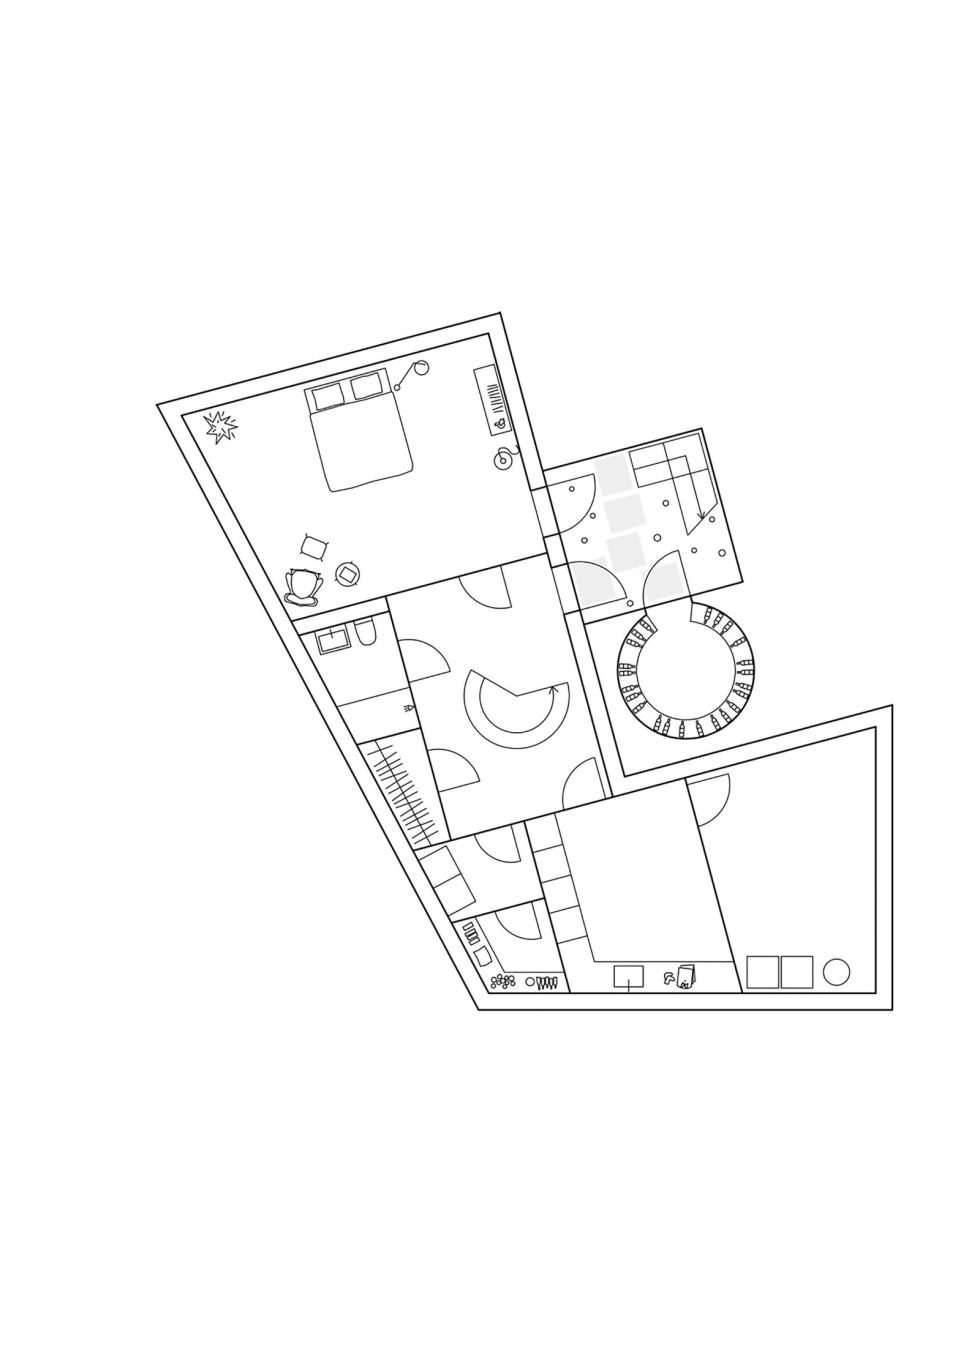 Molle By The Sea House From Elding Oscarson In Sweden - Basement Floor Plan